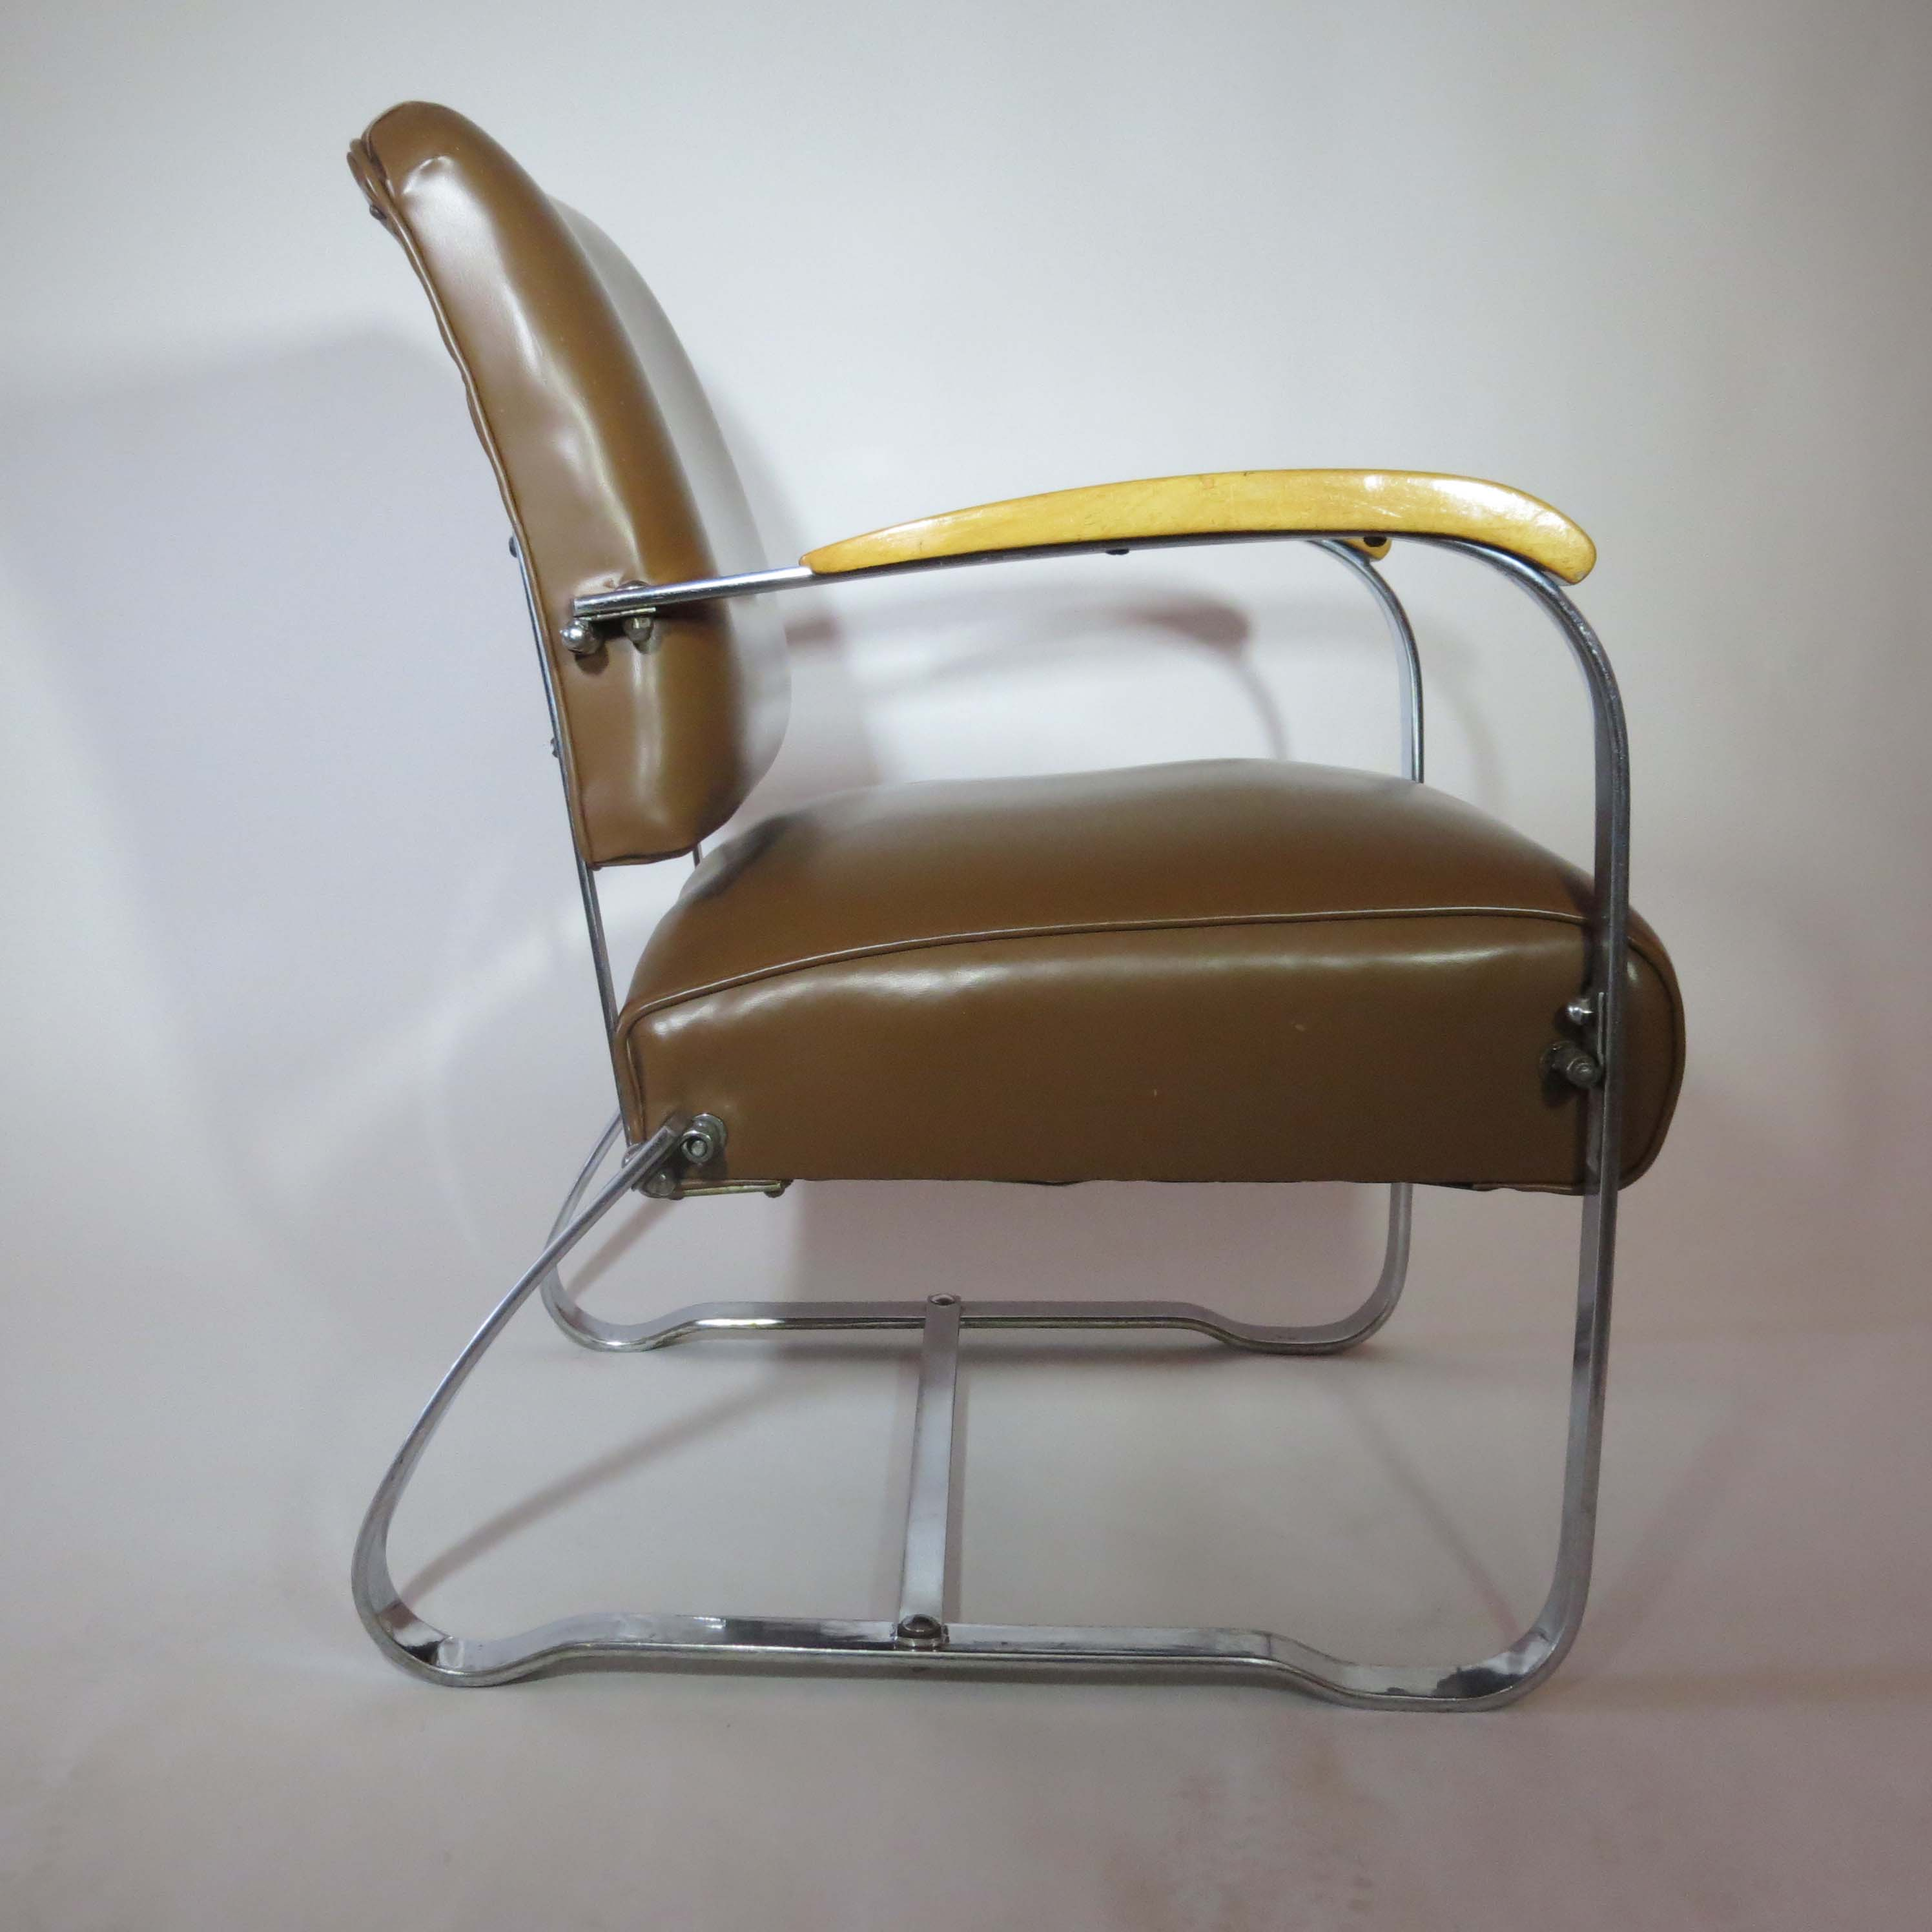 Elegant Pair Of American Art Deco Arm Chairs By The McKay Company